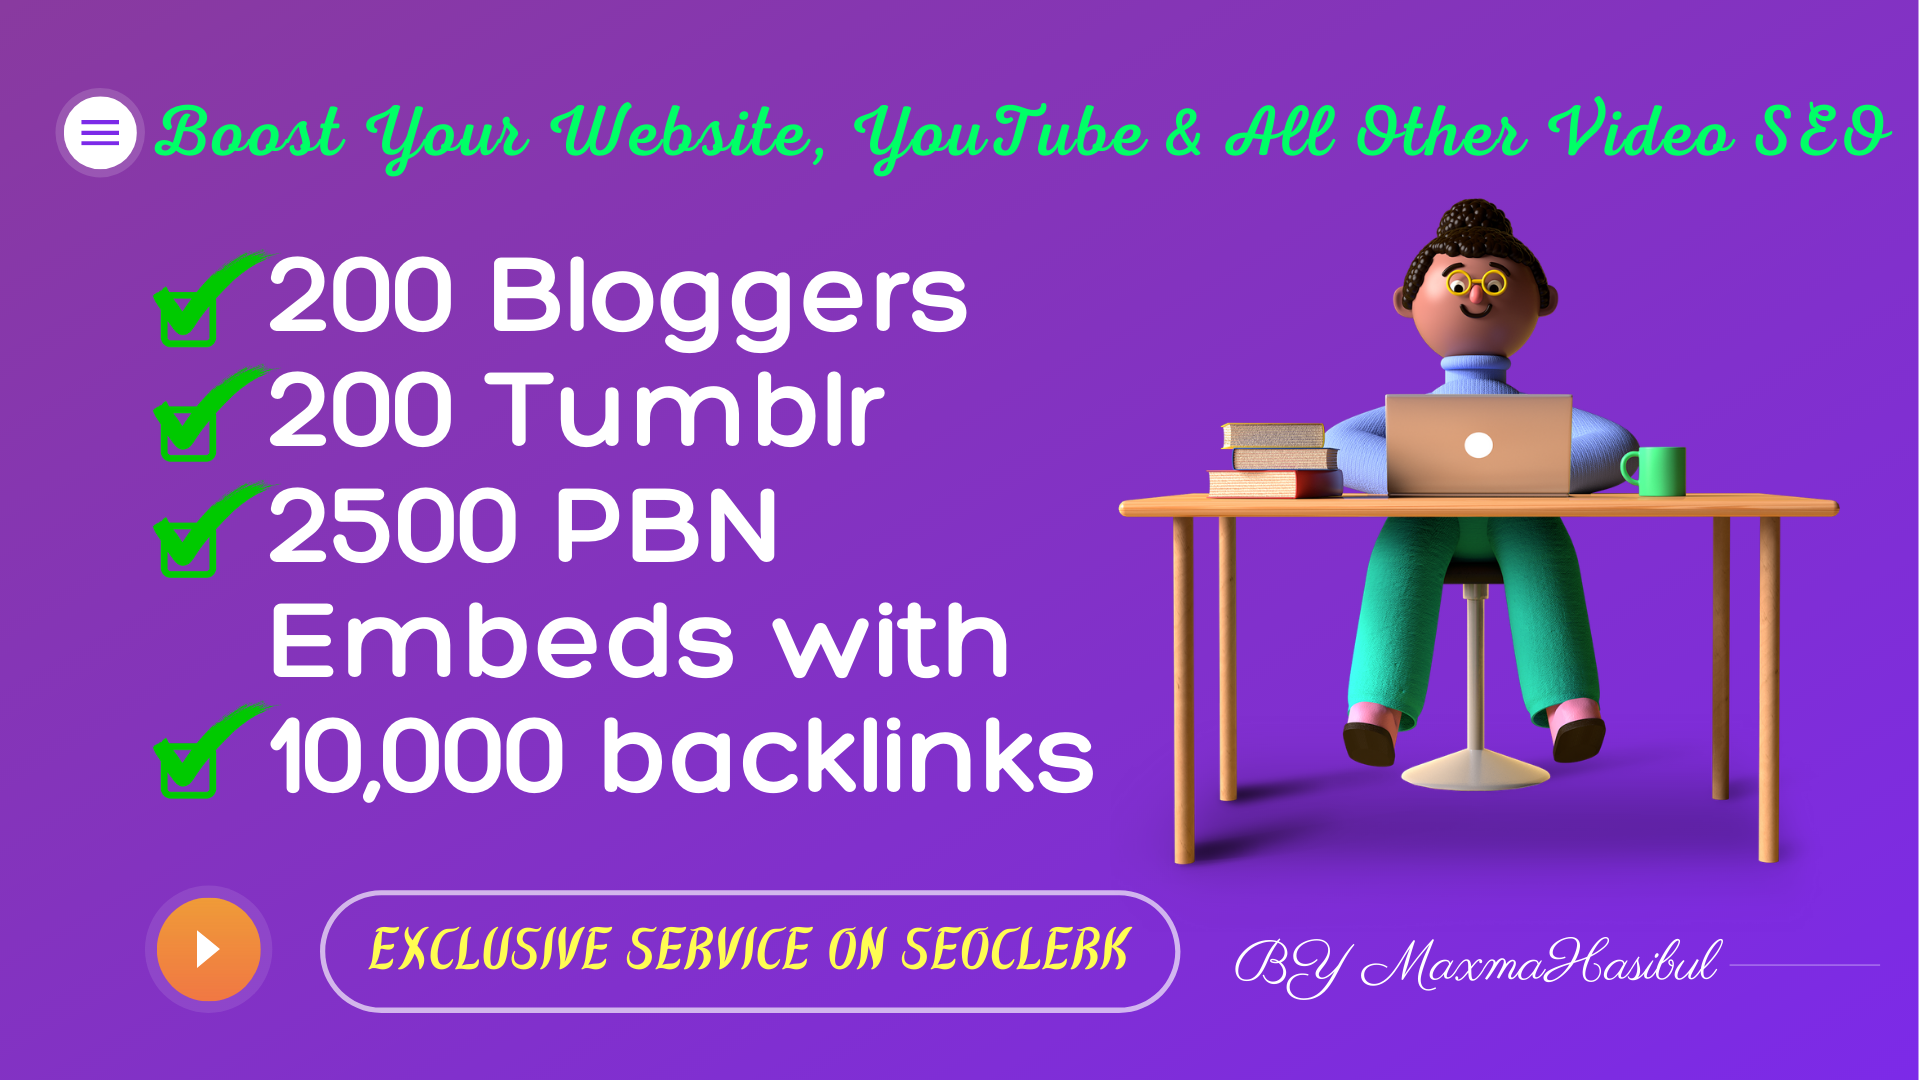 200 Blogger,  200 Tumblr,  2500 PBN Blog Embeds with 10,000 Backlinks for YouTube Video SEO